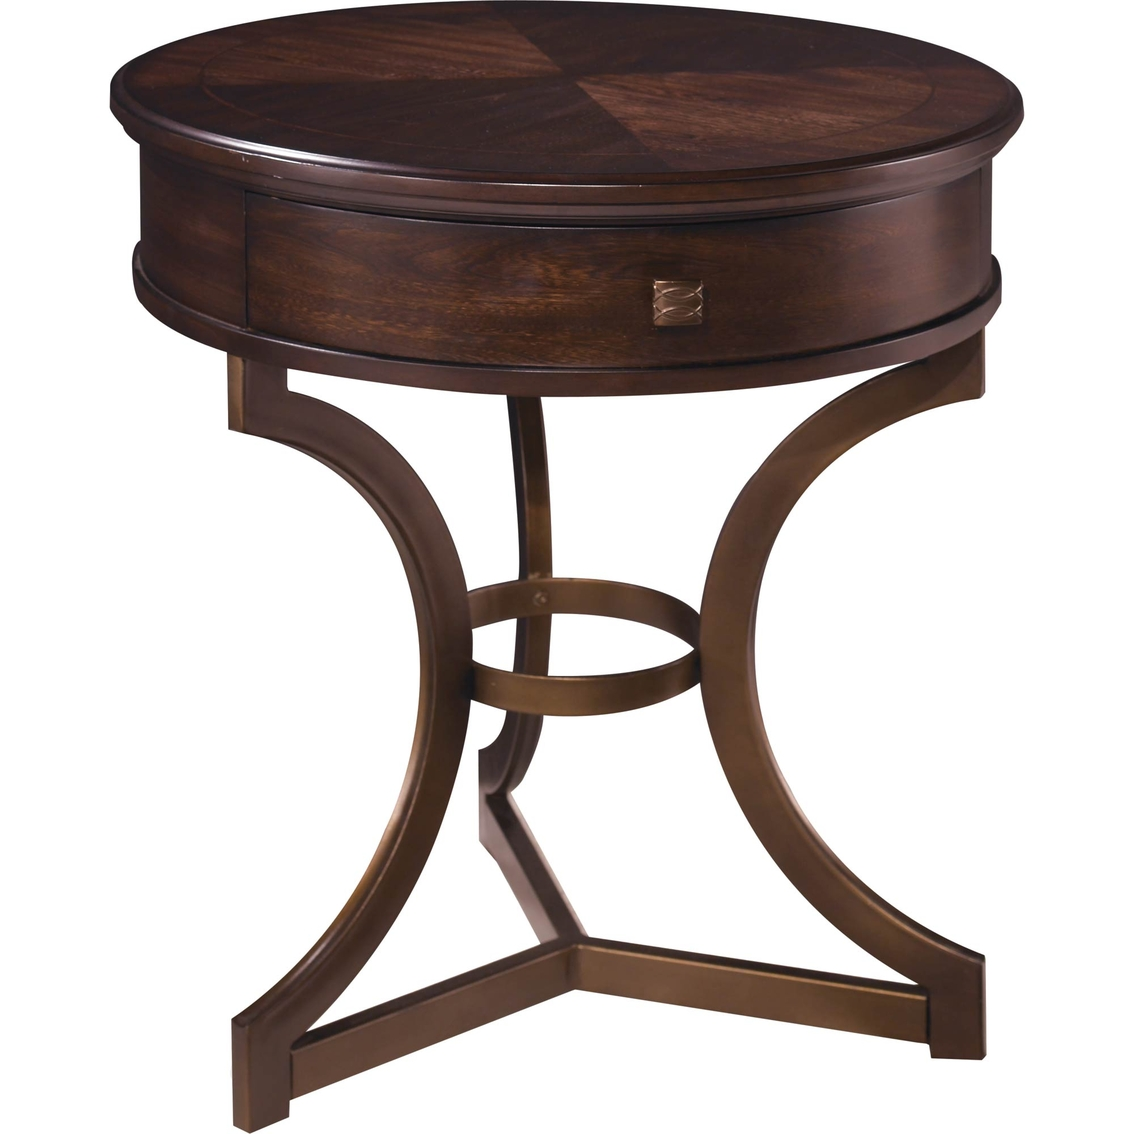 A R T Furniture Round End Table Living Room Tables Home Appliances Shop The Exchange